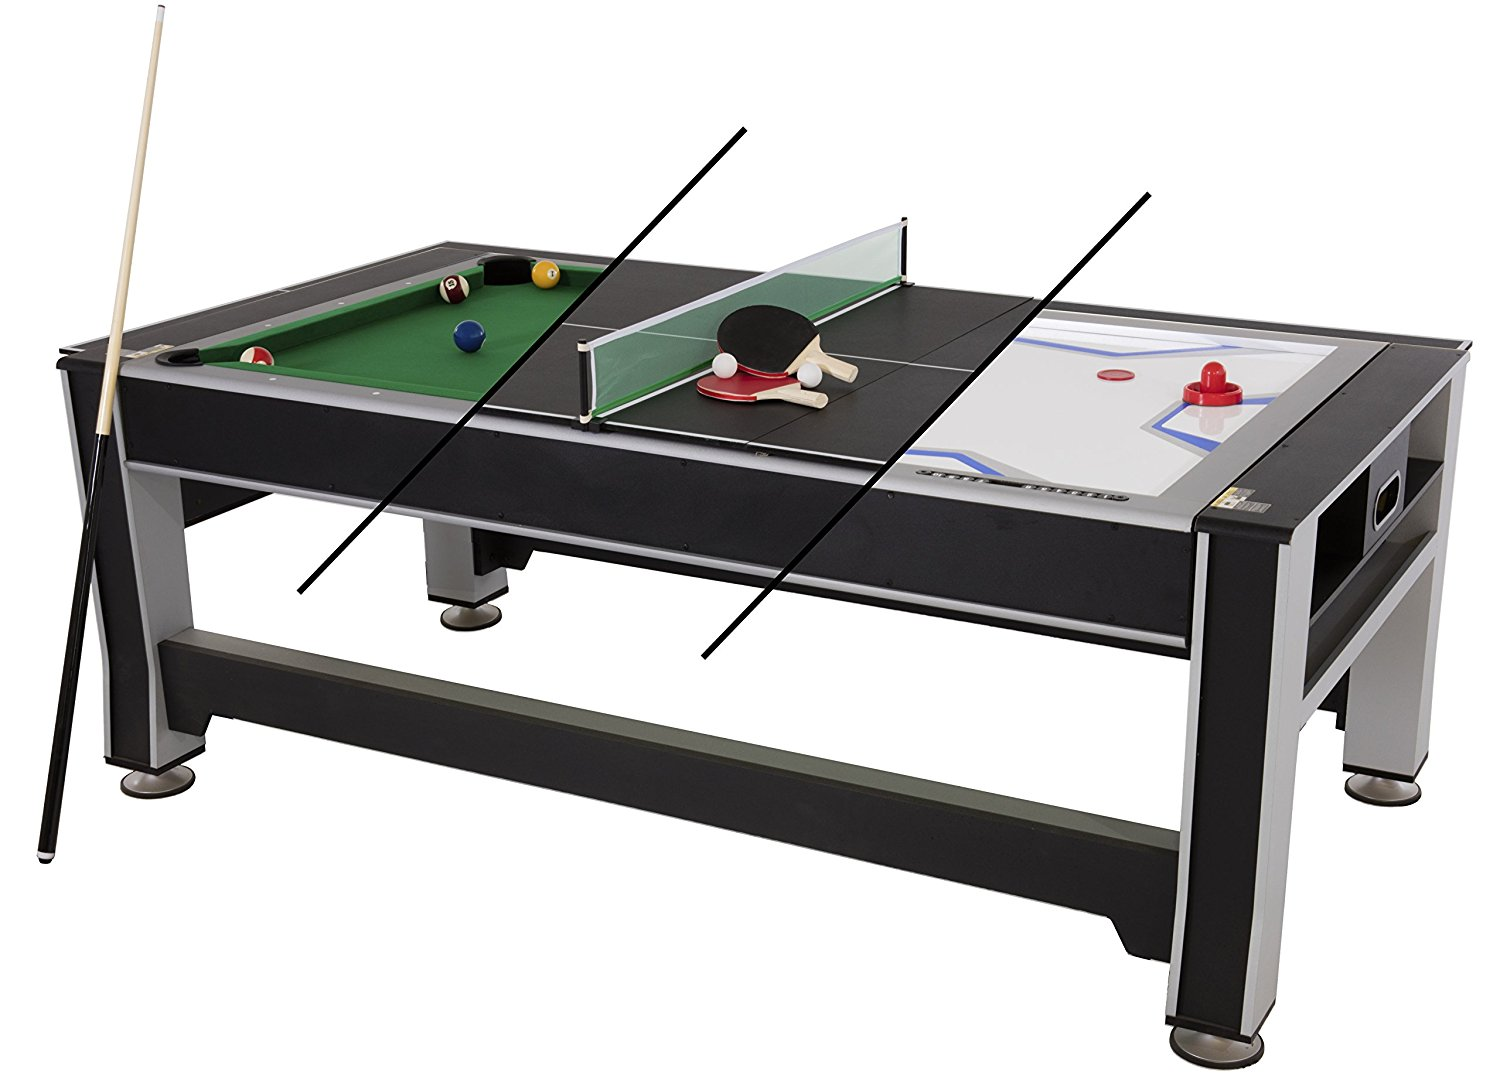 Top Best Pool Ping Pong Table Combo Reviews For Game Room - Billiards ping pong table